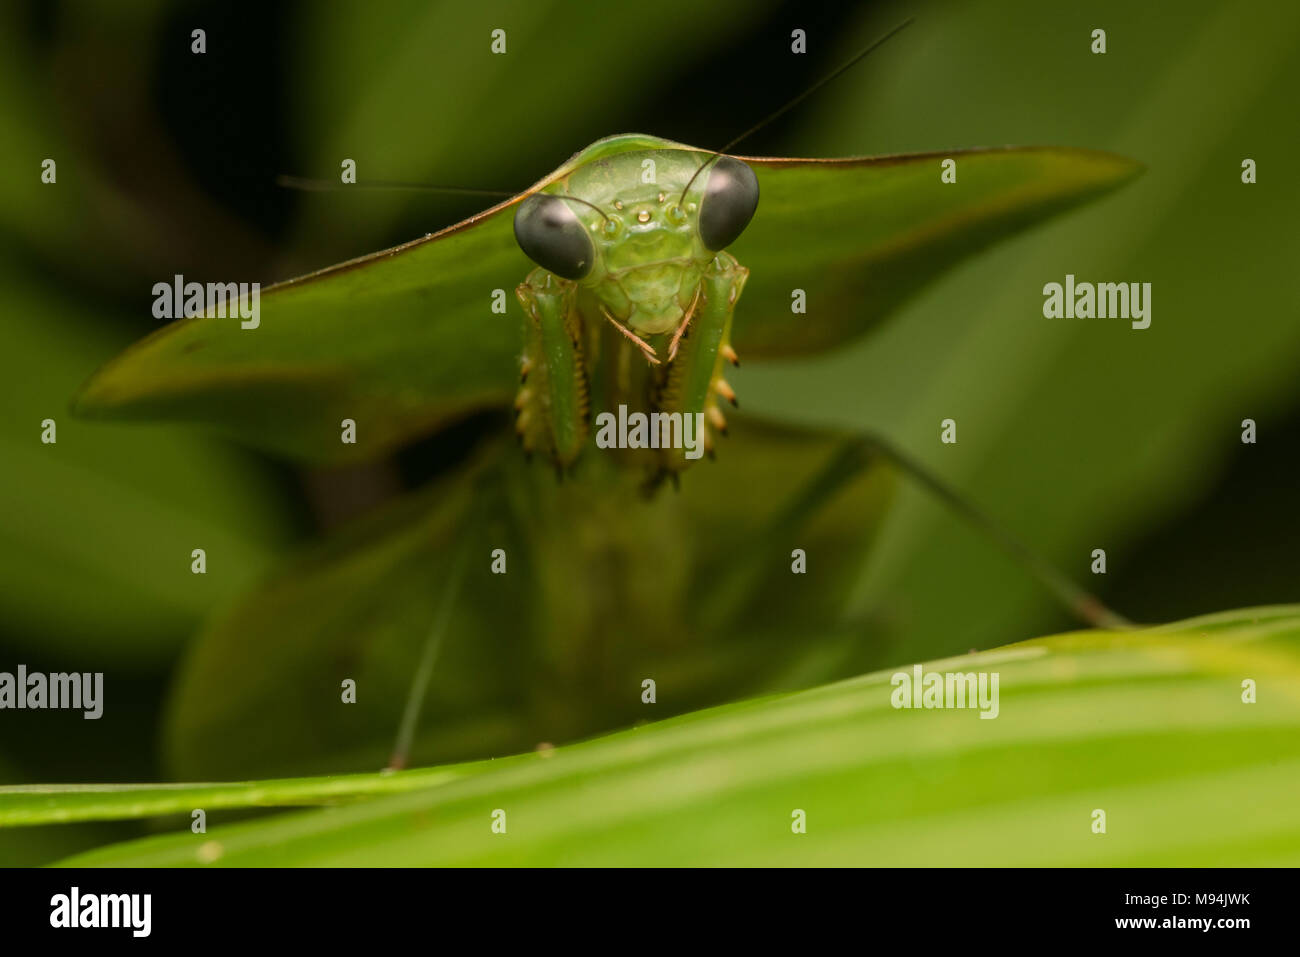 A shield or leaf mantis (Choeradodis species) relies on its amazing camouflage to blend in with plants and stay hidden. - Stock Image